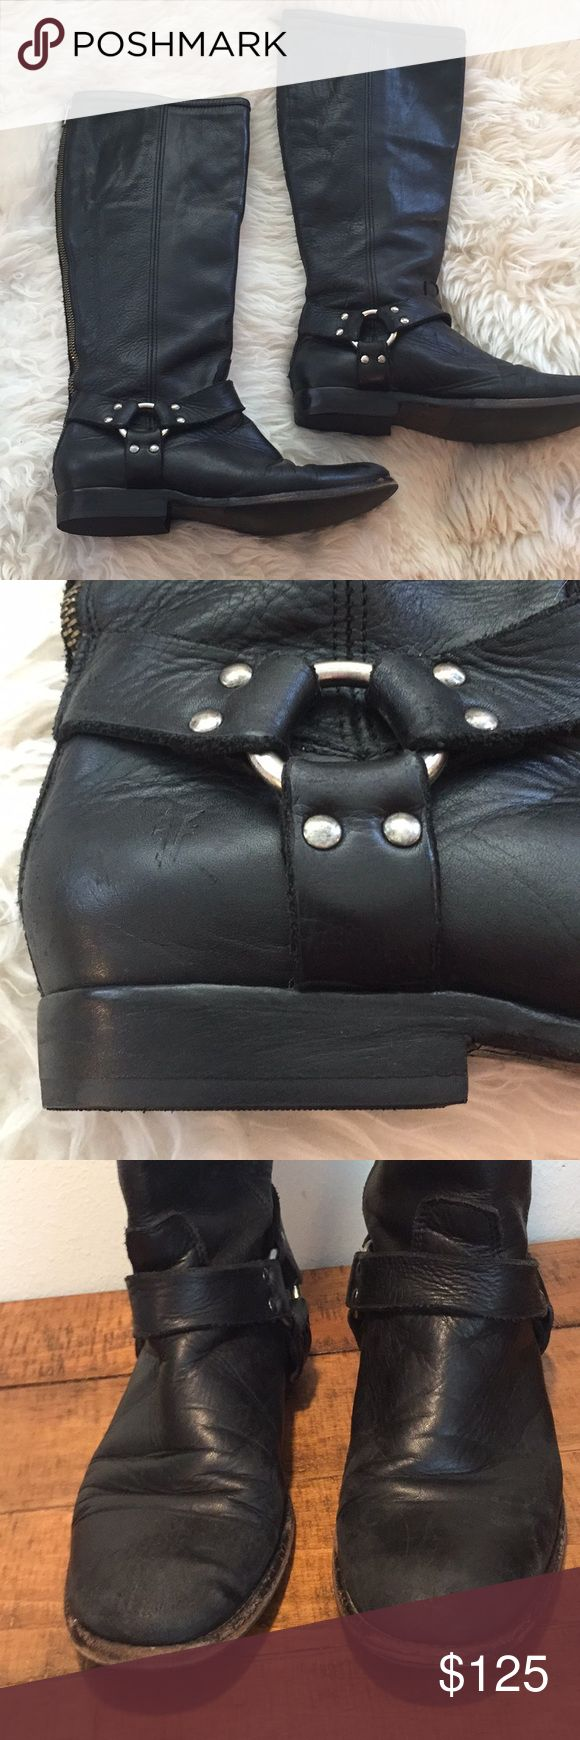 Ladies Frye boots Top quality tall harness boot by Frye. Preloved cleaned and conditioned for you. Fresh from the boot shop with new heels. A fall style staple ❤️ Frye Shoes Heeled Boots